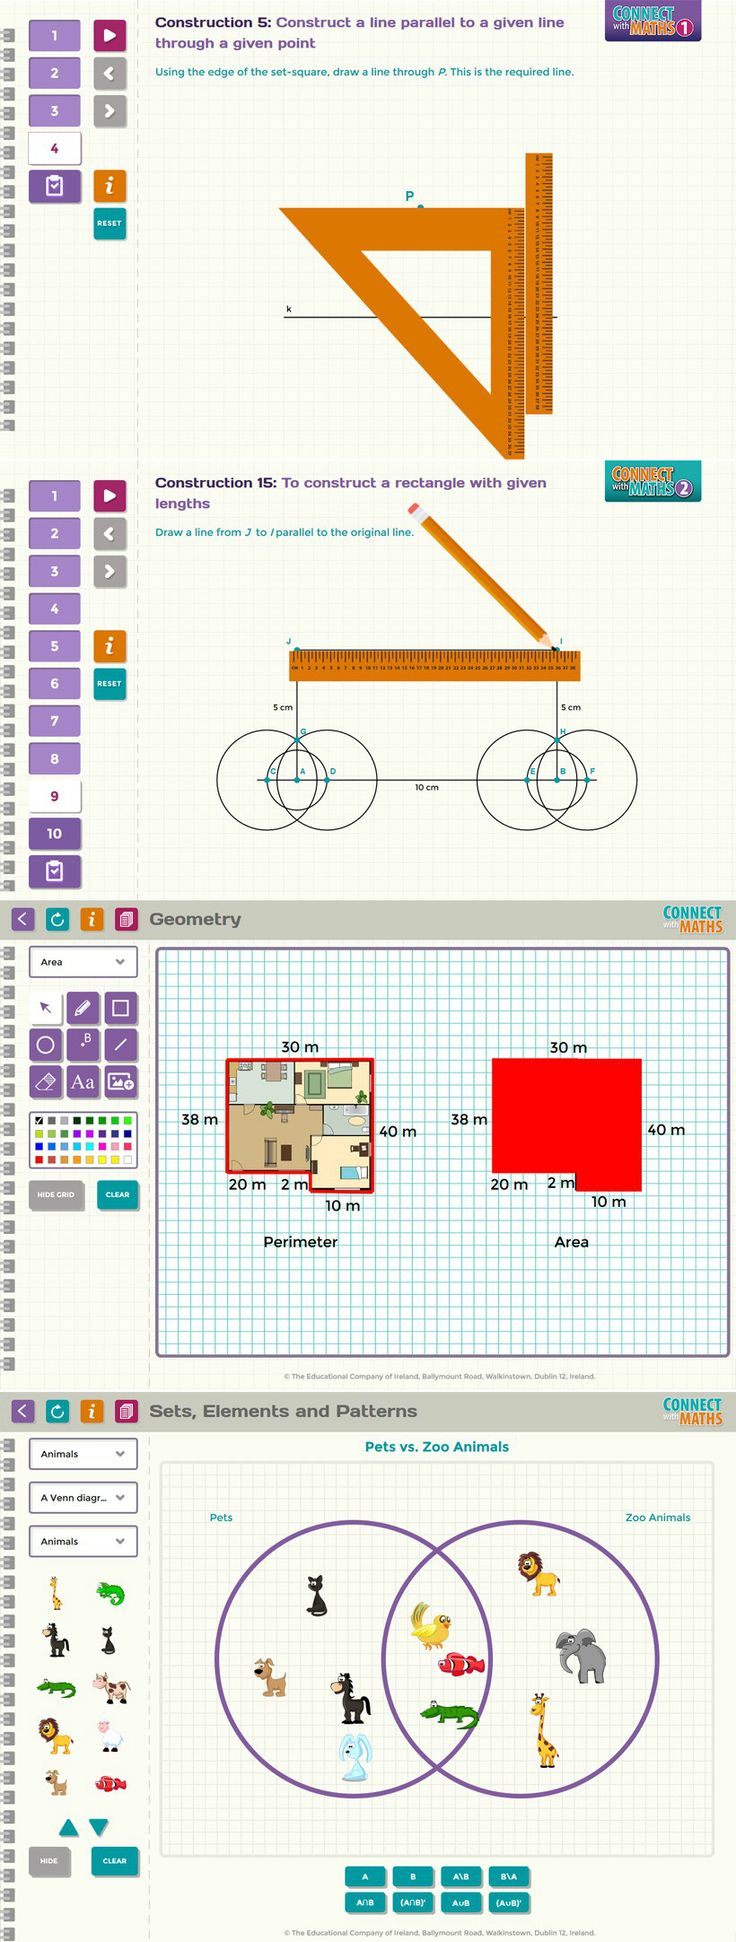 Connect with Maths is a series of digital textbooks.Two projects were created: A series of constructions animations to show how to draw geometrical shapes and figures. A suite of 8 versatile Interactive Tools that can be manipulated to explore key mathematical concepts. We were responsible for complete application preparation, starting from website prototype, through graphic design and ending up on HTML/CSS/JS development. www.merixstudio.com/case-studies/educational-company-ireland/